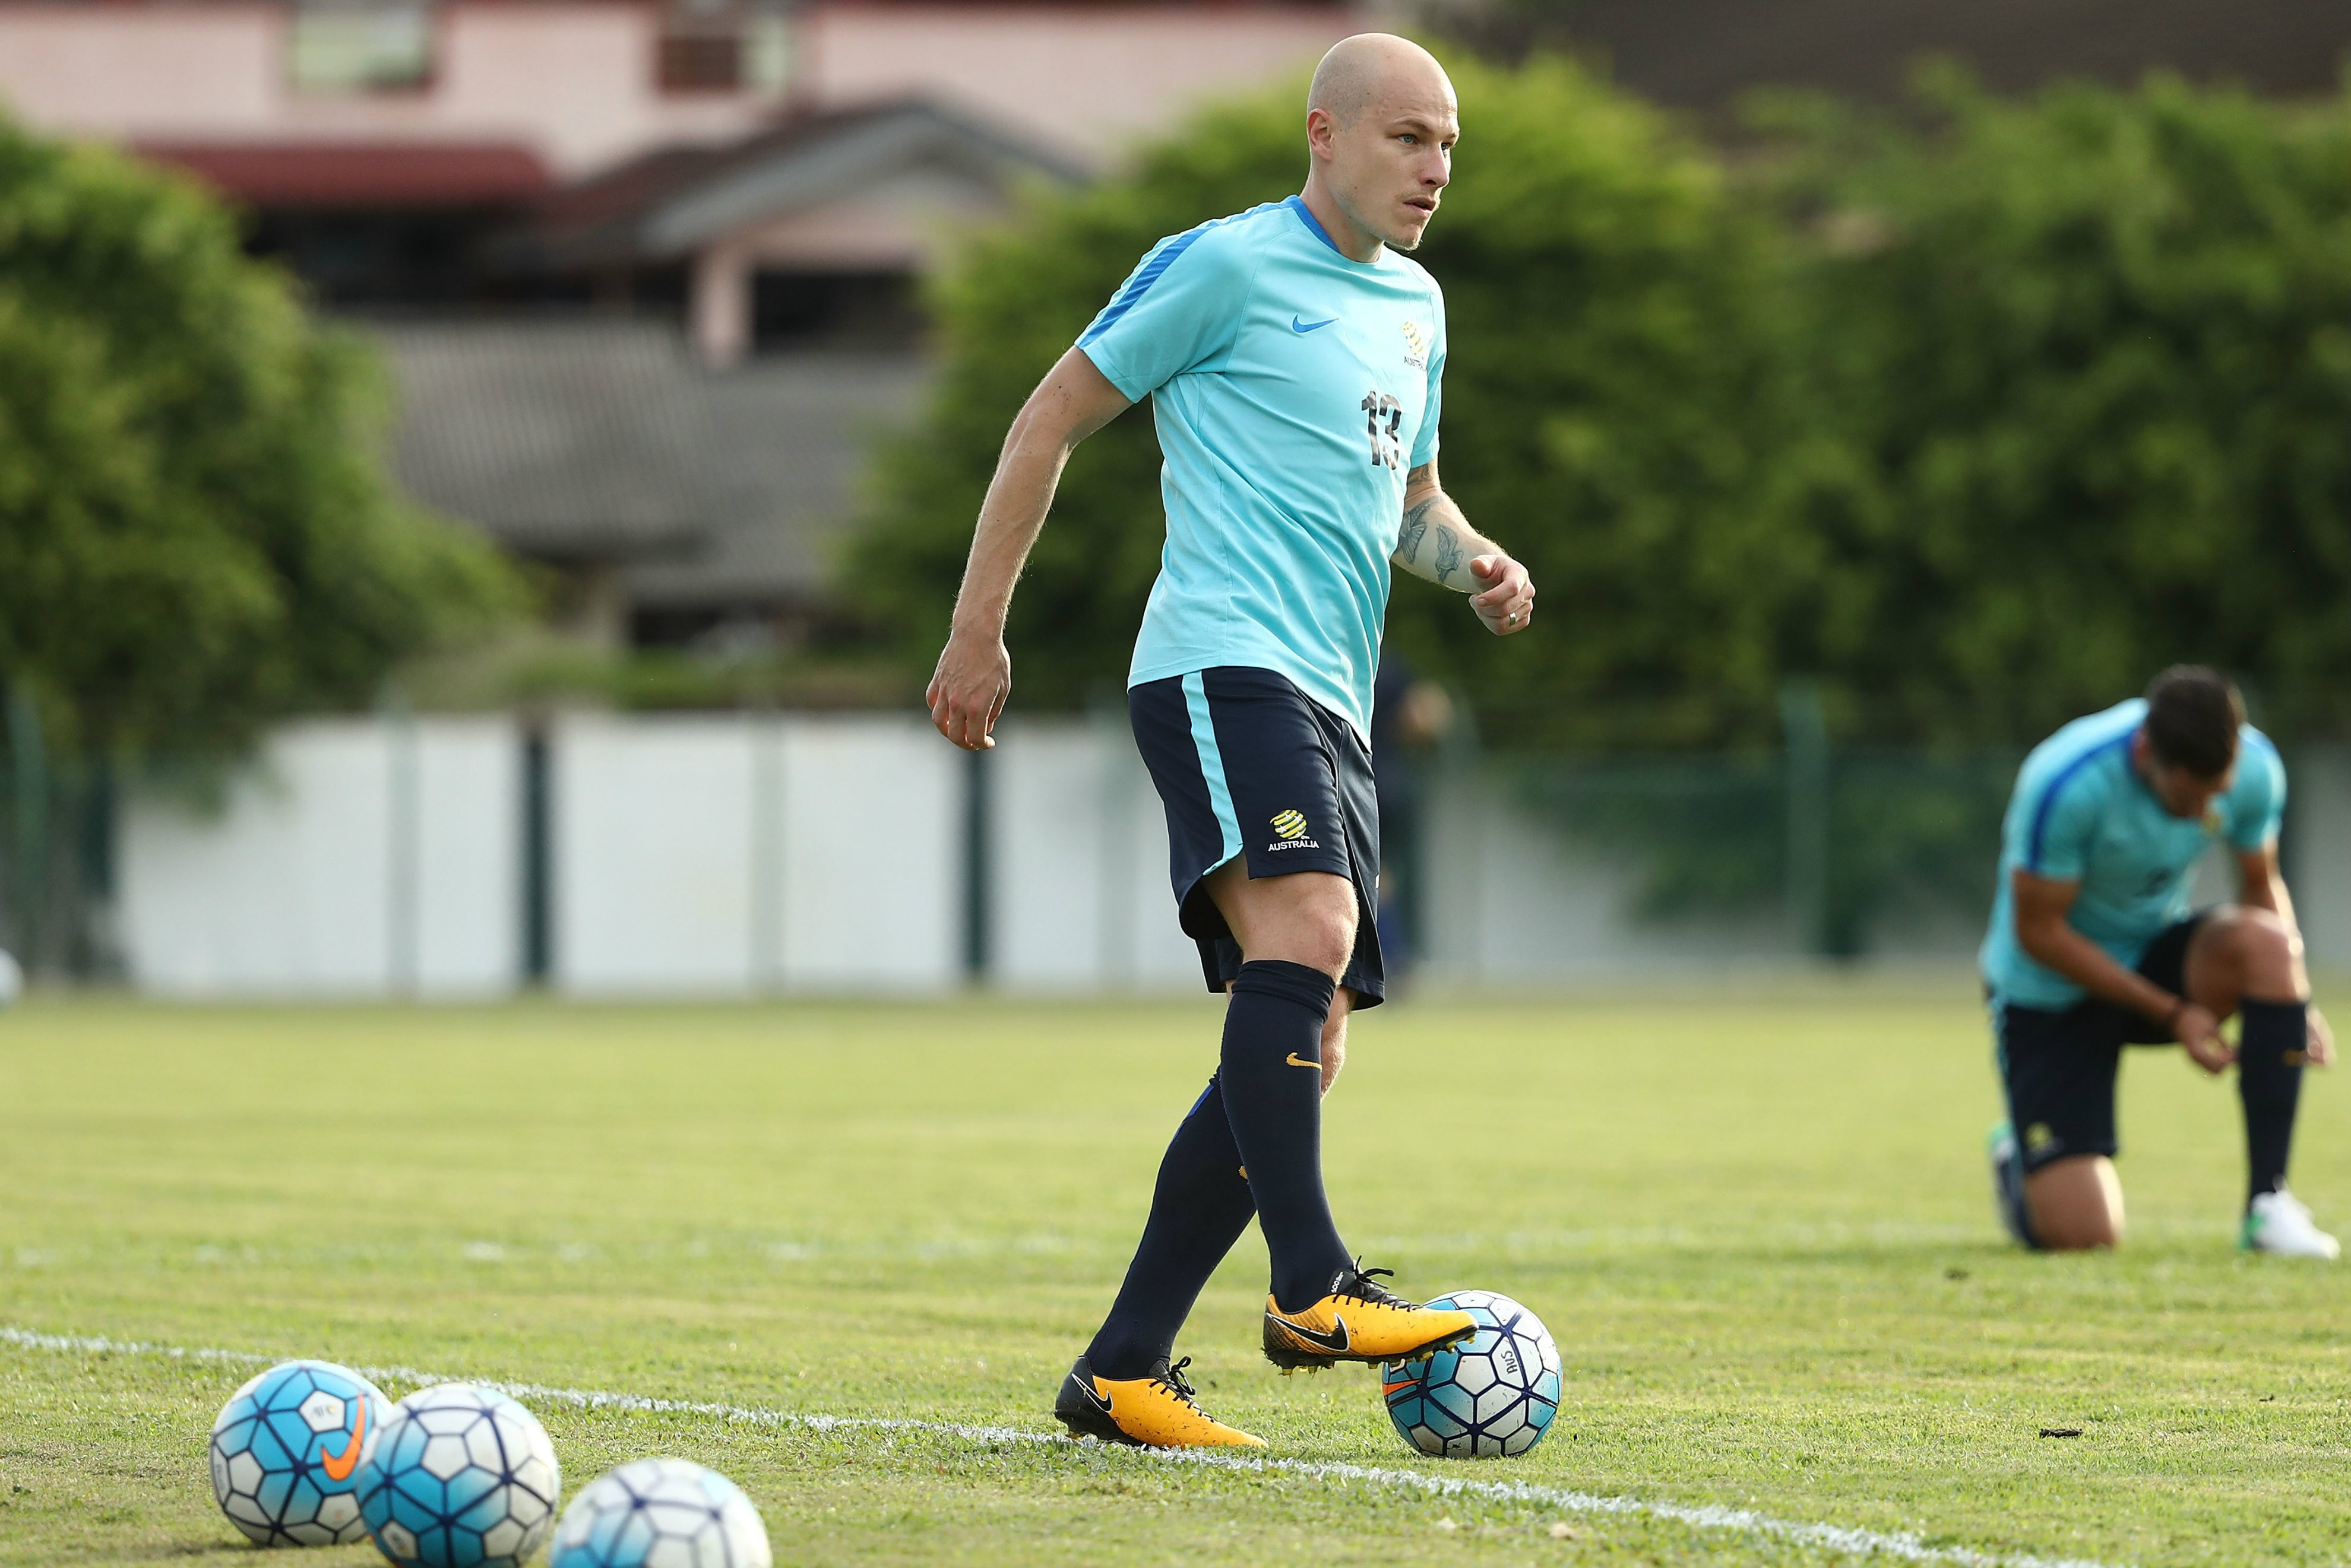 Aaron Mooy in training with the Caltex Socceroos in Melaka.